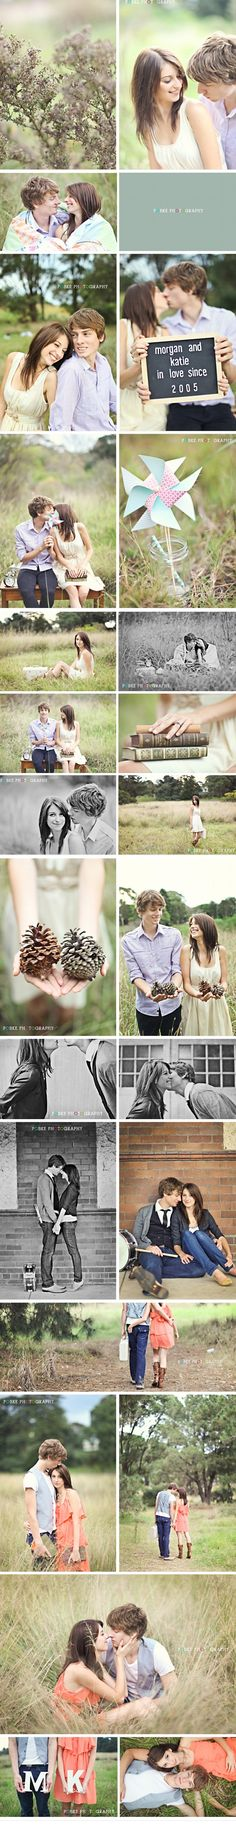 """Wonderful """"Save The Date"""" session from POBKE Photography (http://www.pobkephotography.com) via Beyond Beyond"""